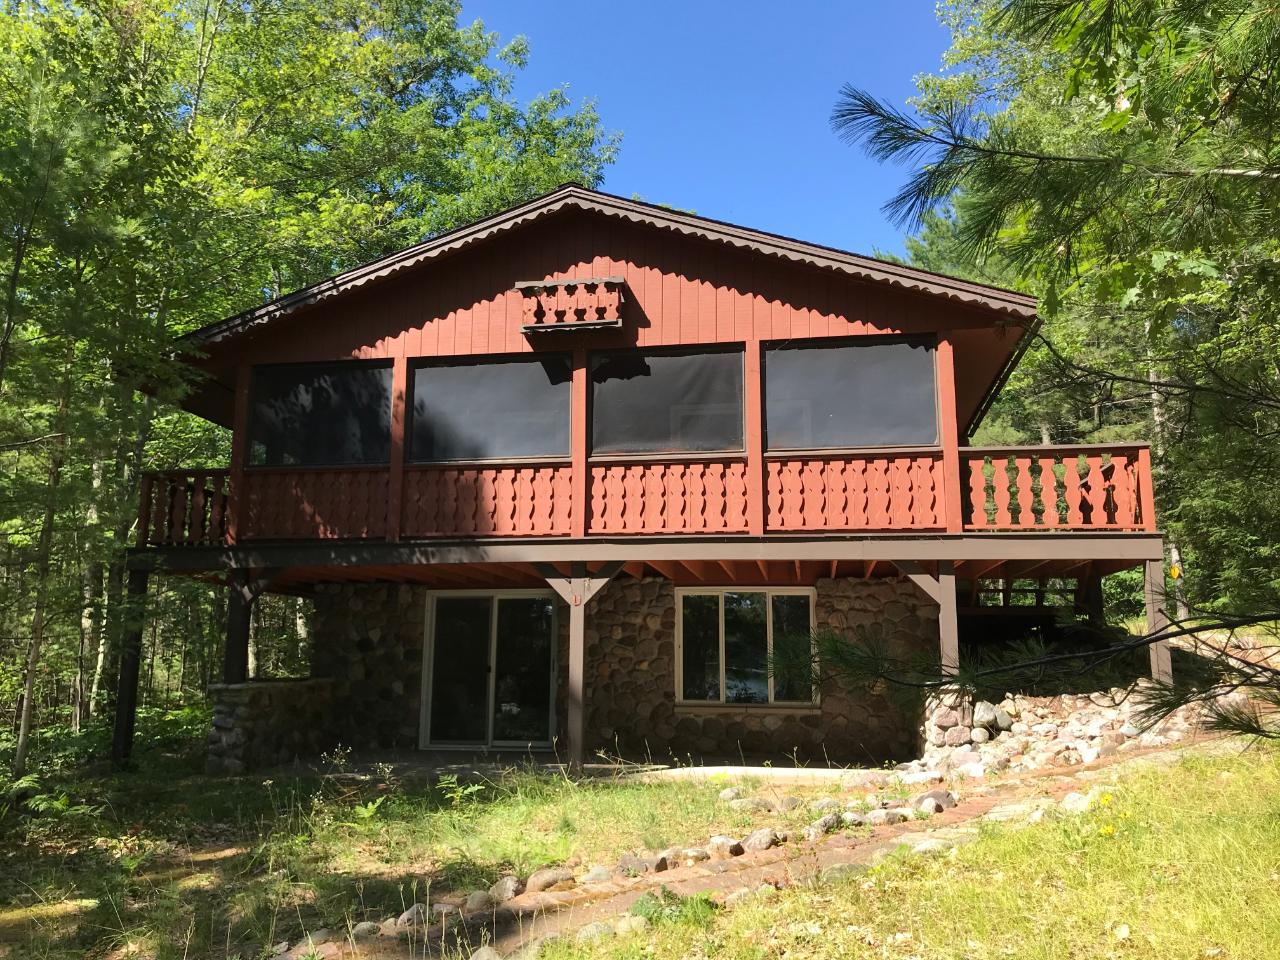 LOOKING FOR PEACE AND TRANQUILITY? You will find it here! This three bedroom, two bath home sits on 301 feet of frontage on peaceful Mitten Lake and has 6 acres of land for privacy. Located very close to the Chequamegon National Forest, it is a great spot to be for hunting. The view of the lake looks like you are in a wilderness area with trees lining the shoreline. The home was completely remodeled by the current owners in 1993. There are two bedrooms and a full bath on the main level. The living area is open concept with patio doors to a screened porch overlooking the lake. The lower level features tile flooring throughout. The family room has a beautiful stone fireplace and views of the lake. A third bedroom, full bath and laundry/utililty room complete the lower level. A two car garage stores the toys you will want to enjoy this wonderful property. And it comes completely furnished, including a pontoon boat to enjoy the lake! LL Bedroom has NO egress windows - New 3BR septic system in 2019.